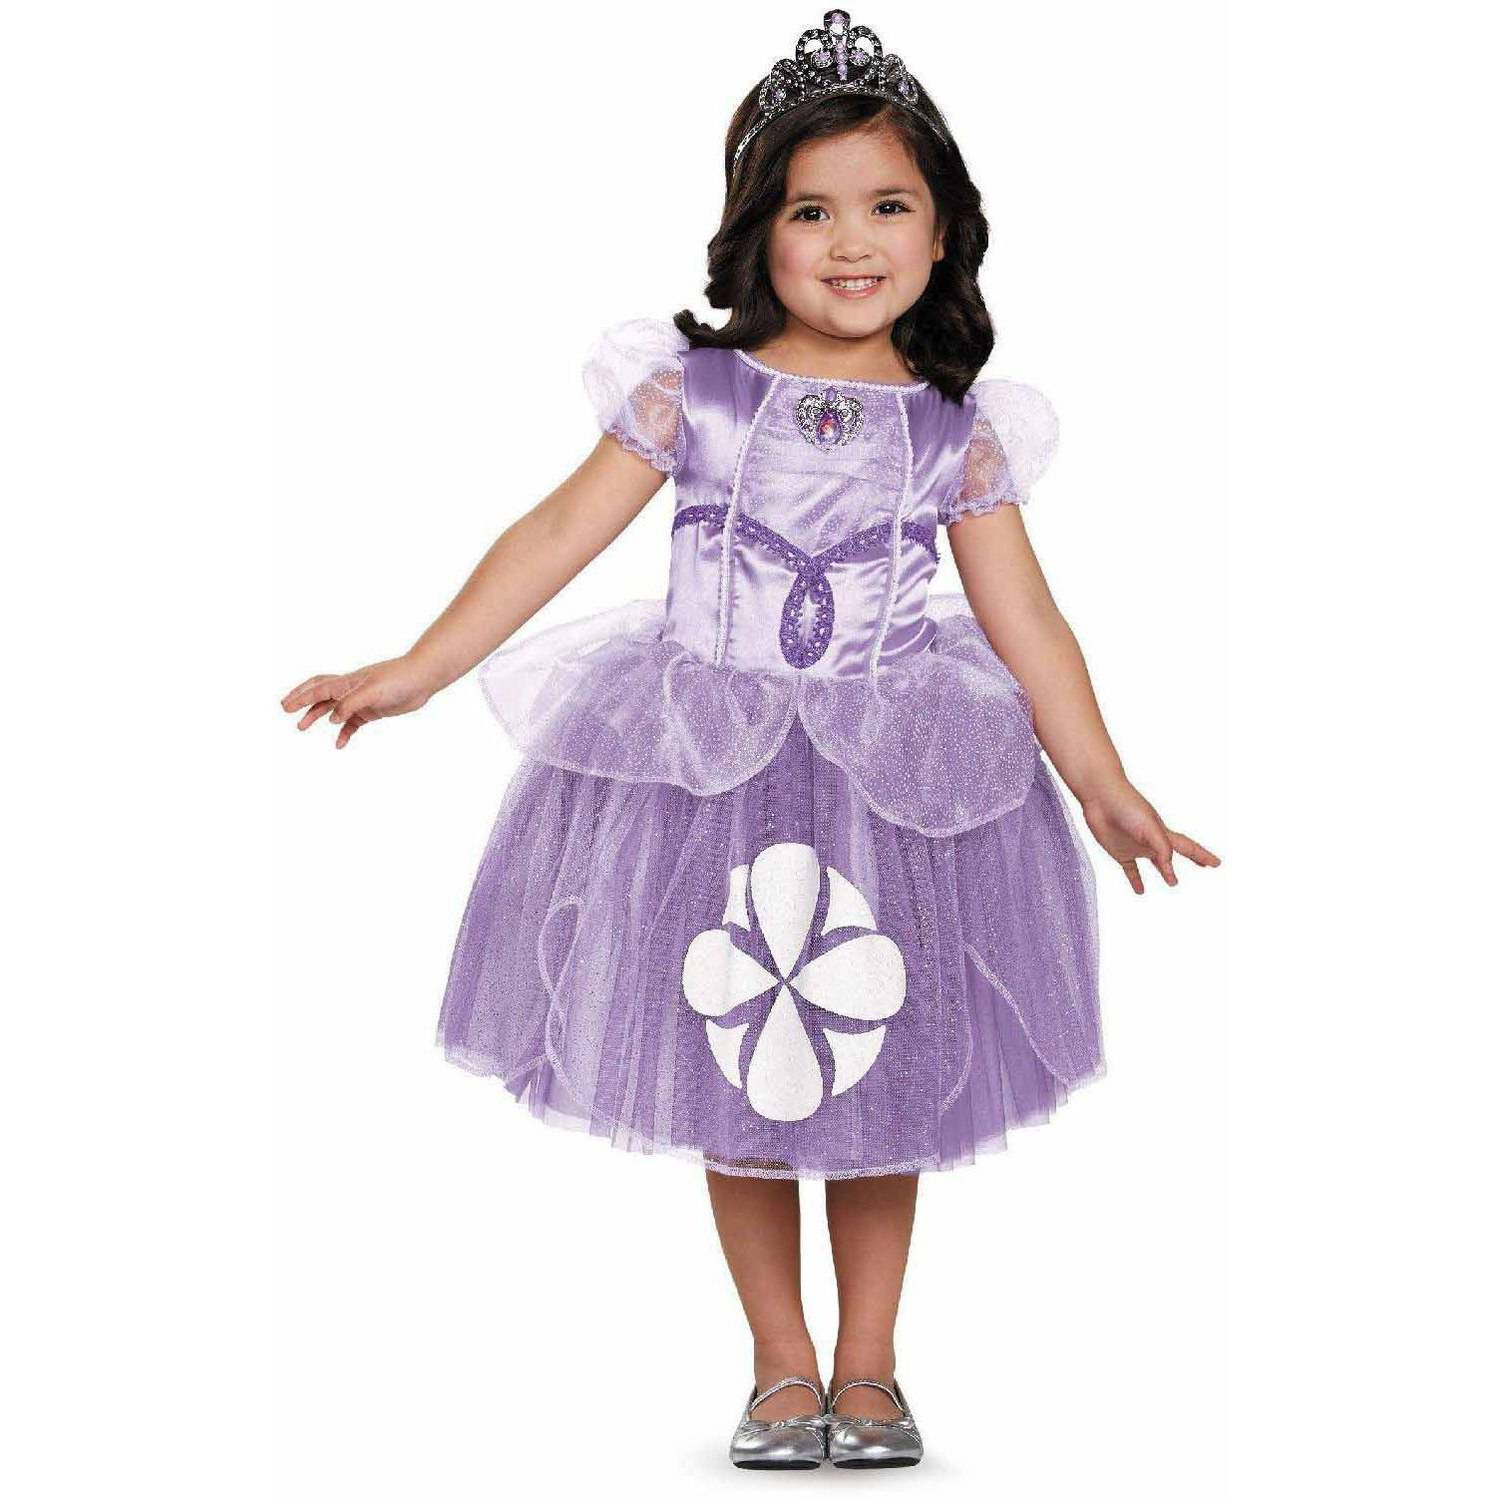 Sofia the First Deluxe Tutu Child Halloween Costume